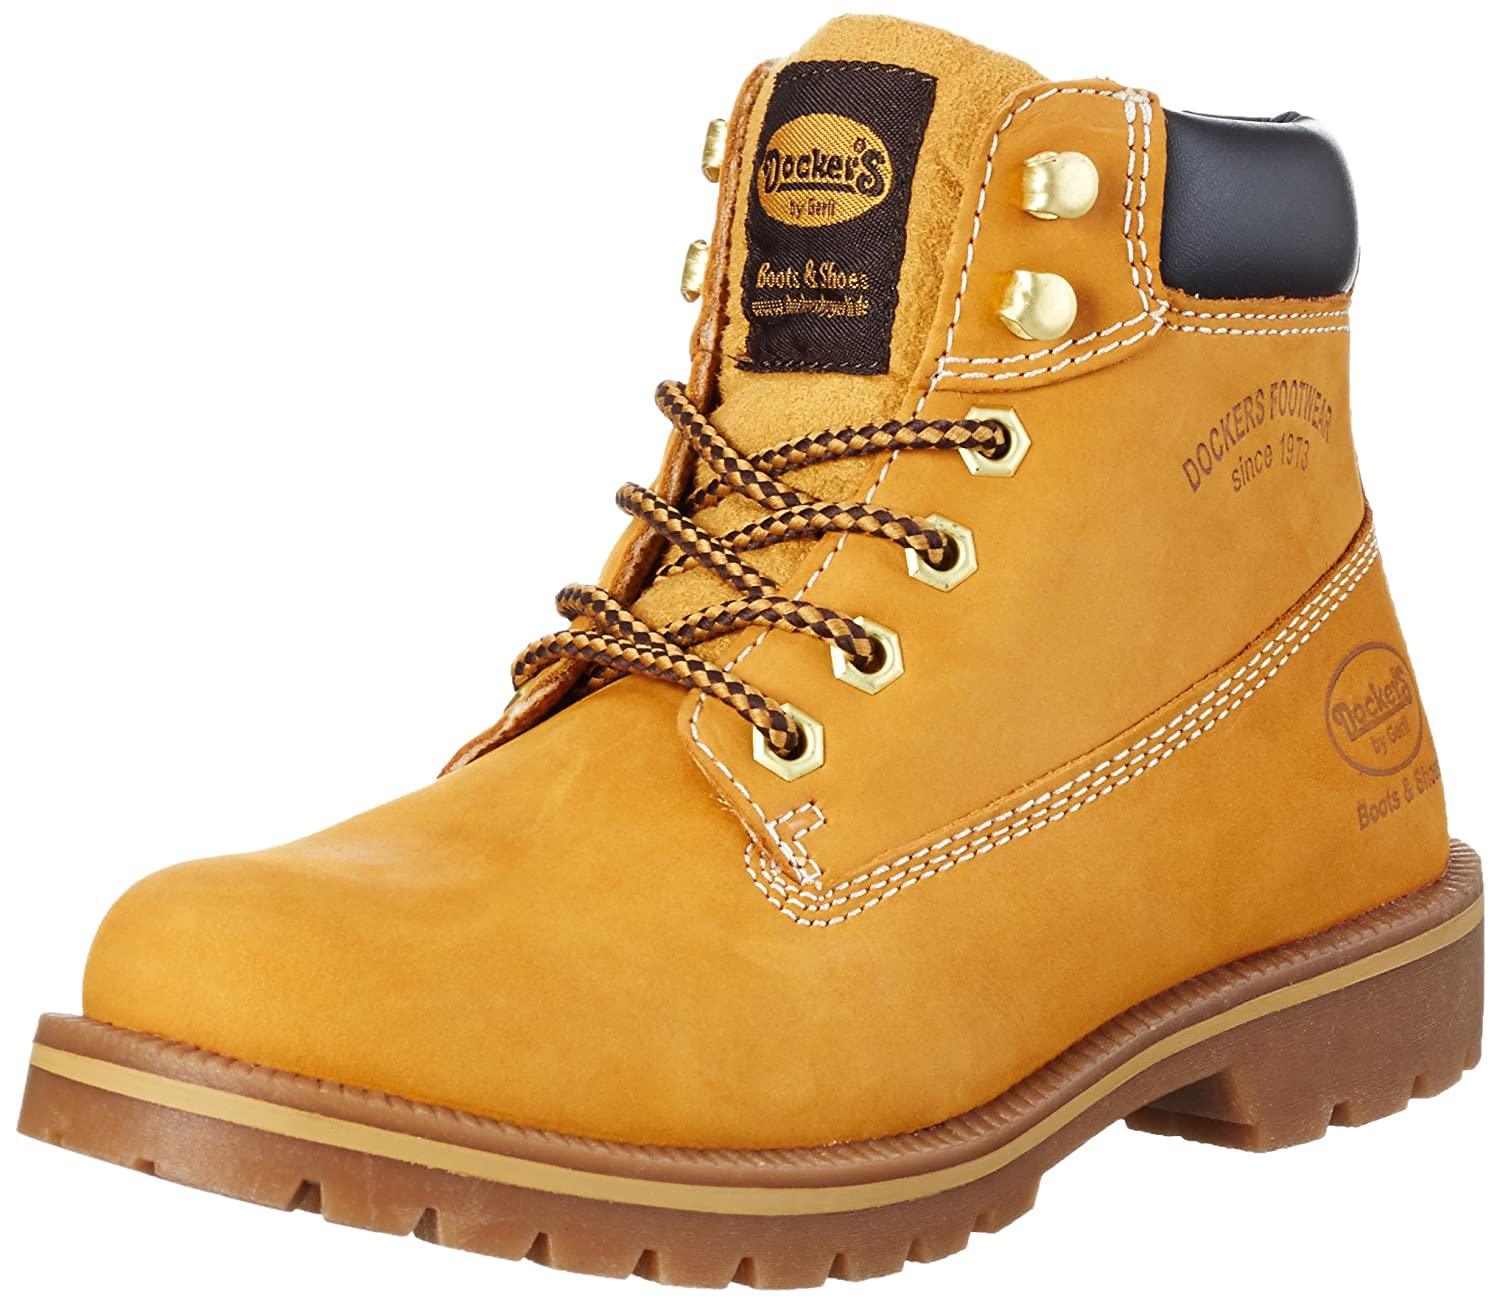 Dockers by Gerli 35aa203-300910, Botines para Mujer Amarillo (Golden Tan 910)